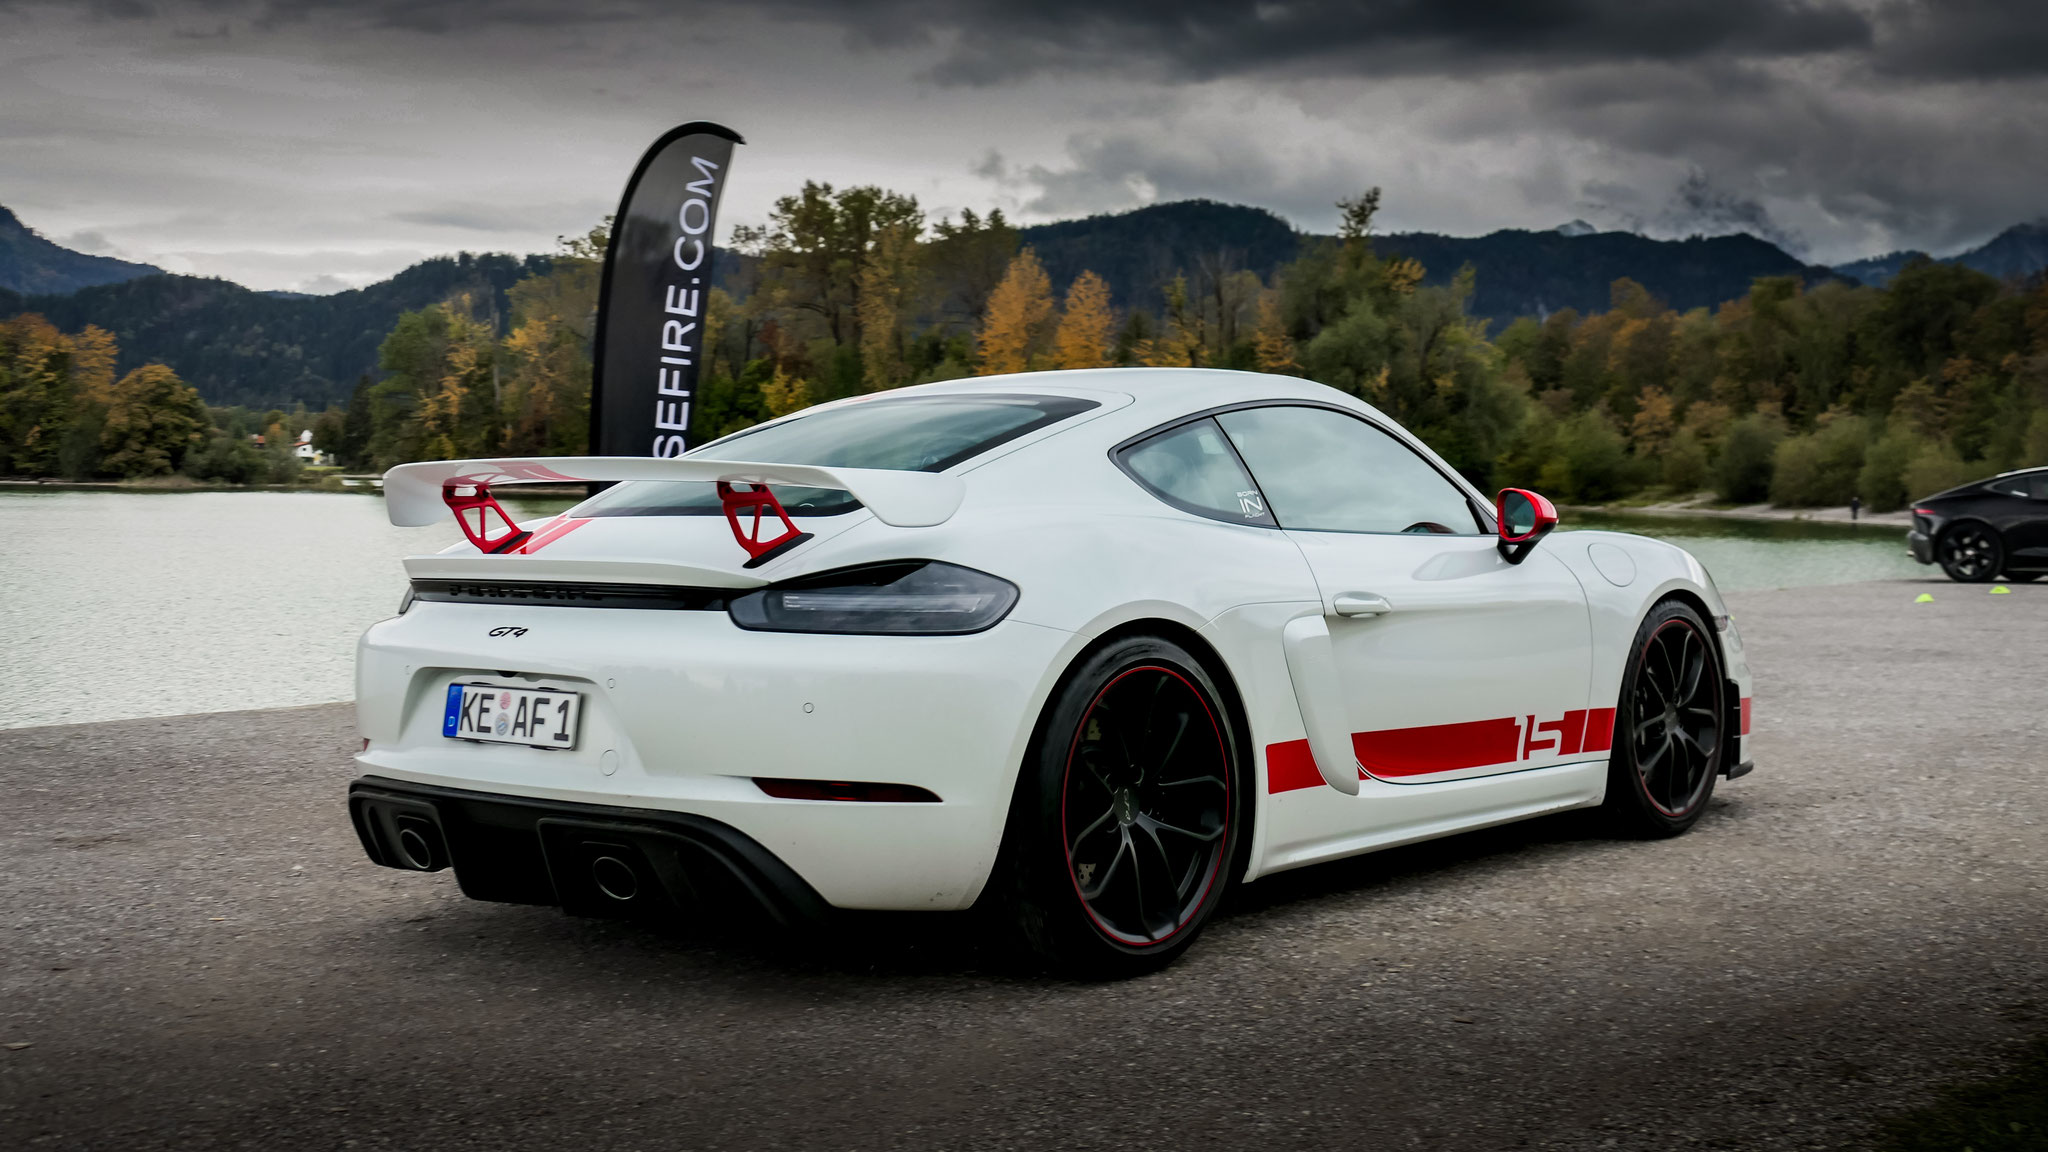 Porsche Cayman GT4 Sports Cup Edition - KE-AF-1